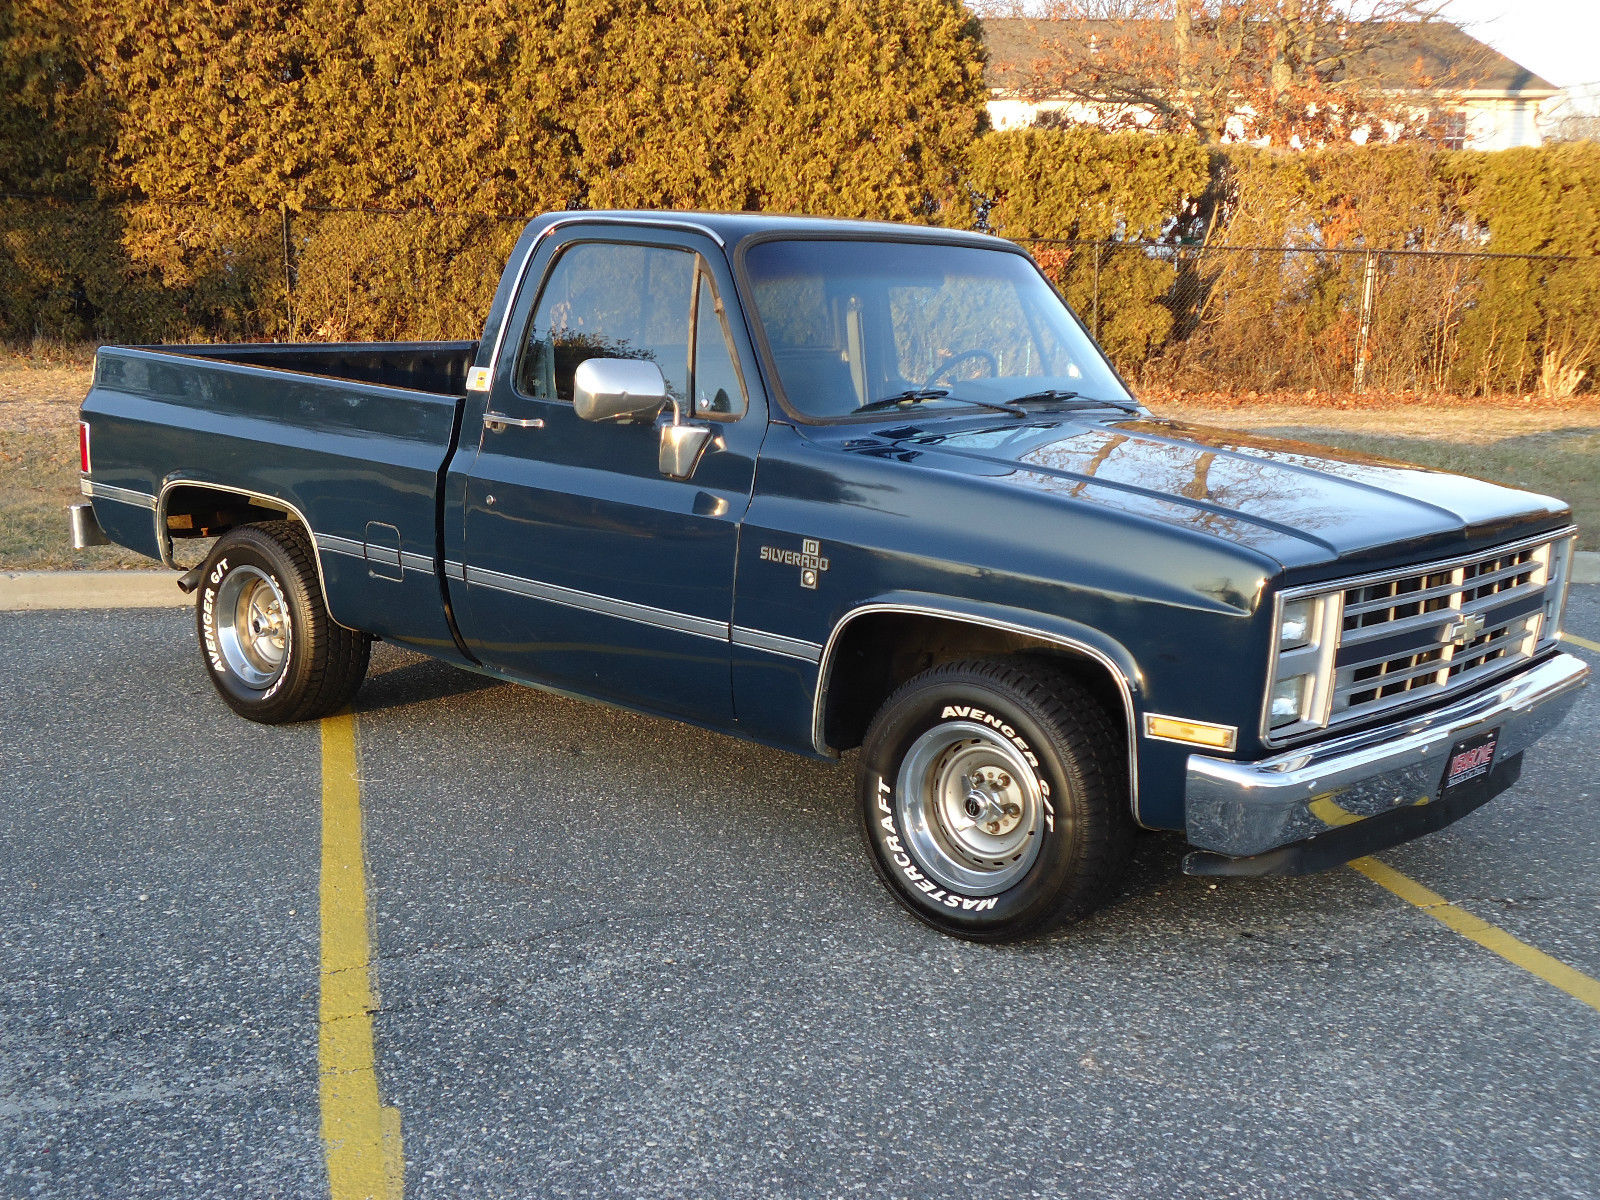 1987 Chevrolet Silverado C10 Super Clean New Paint No Rust Or Rot